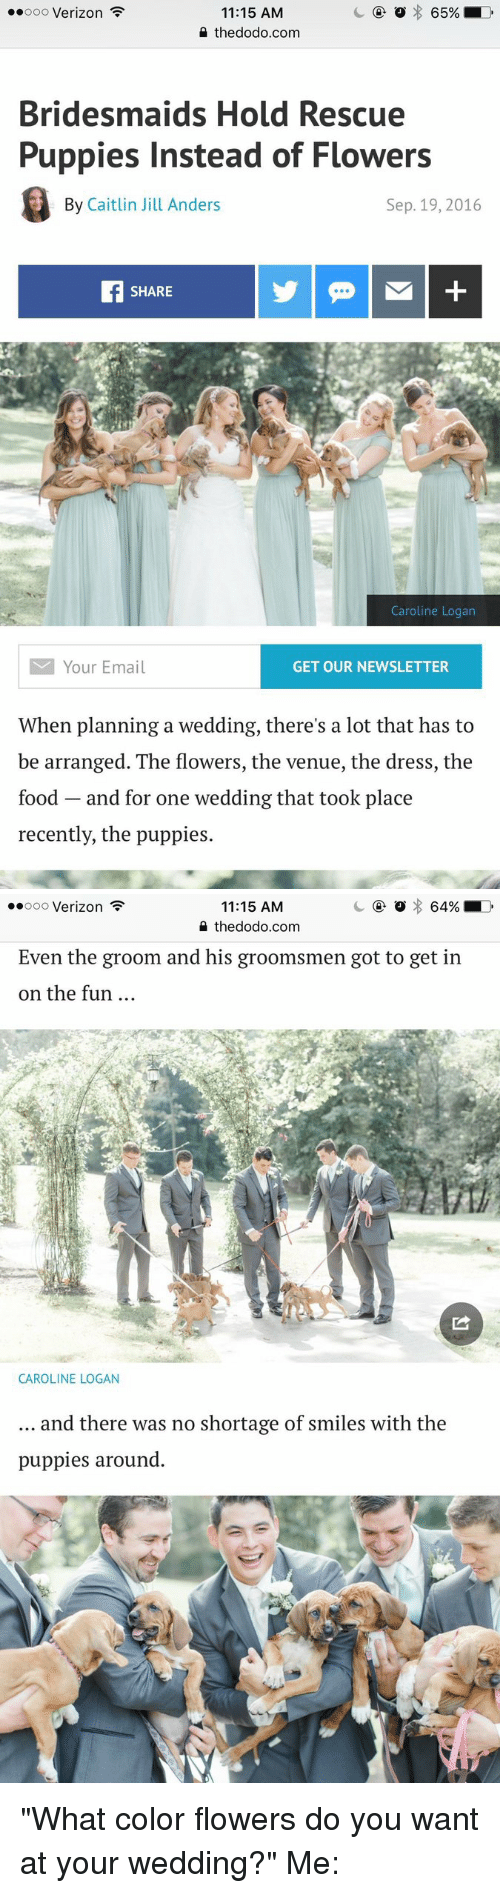 "Groomsmen: o 65%  LD  ooooo Verizon  11:15 AM  the dodo.com  Bridesmaids Hold Rescue  Puppies Instead of Flowers  By Caitlin Jill Anders  Sep. 19, 2016  SHARE  Caroline Logan  M Your Email  GET OUR NEWSLETTER  When planning a wedding, there's a lot that has to  be arranged. The flowers, the venue, the dress, the  food and for one wedding that took place  recently, the puppies.   64% LD  ooooo Verizon  11:15 AM  the dodo.com  Even the groom and his groomsmen got to get in  on the fun  CAROLINE LOGAN  and there was no shortage of smiles with the  puppies around ""What color flowers do you want at your wedding?"" Me:"